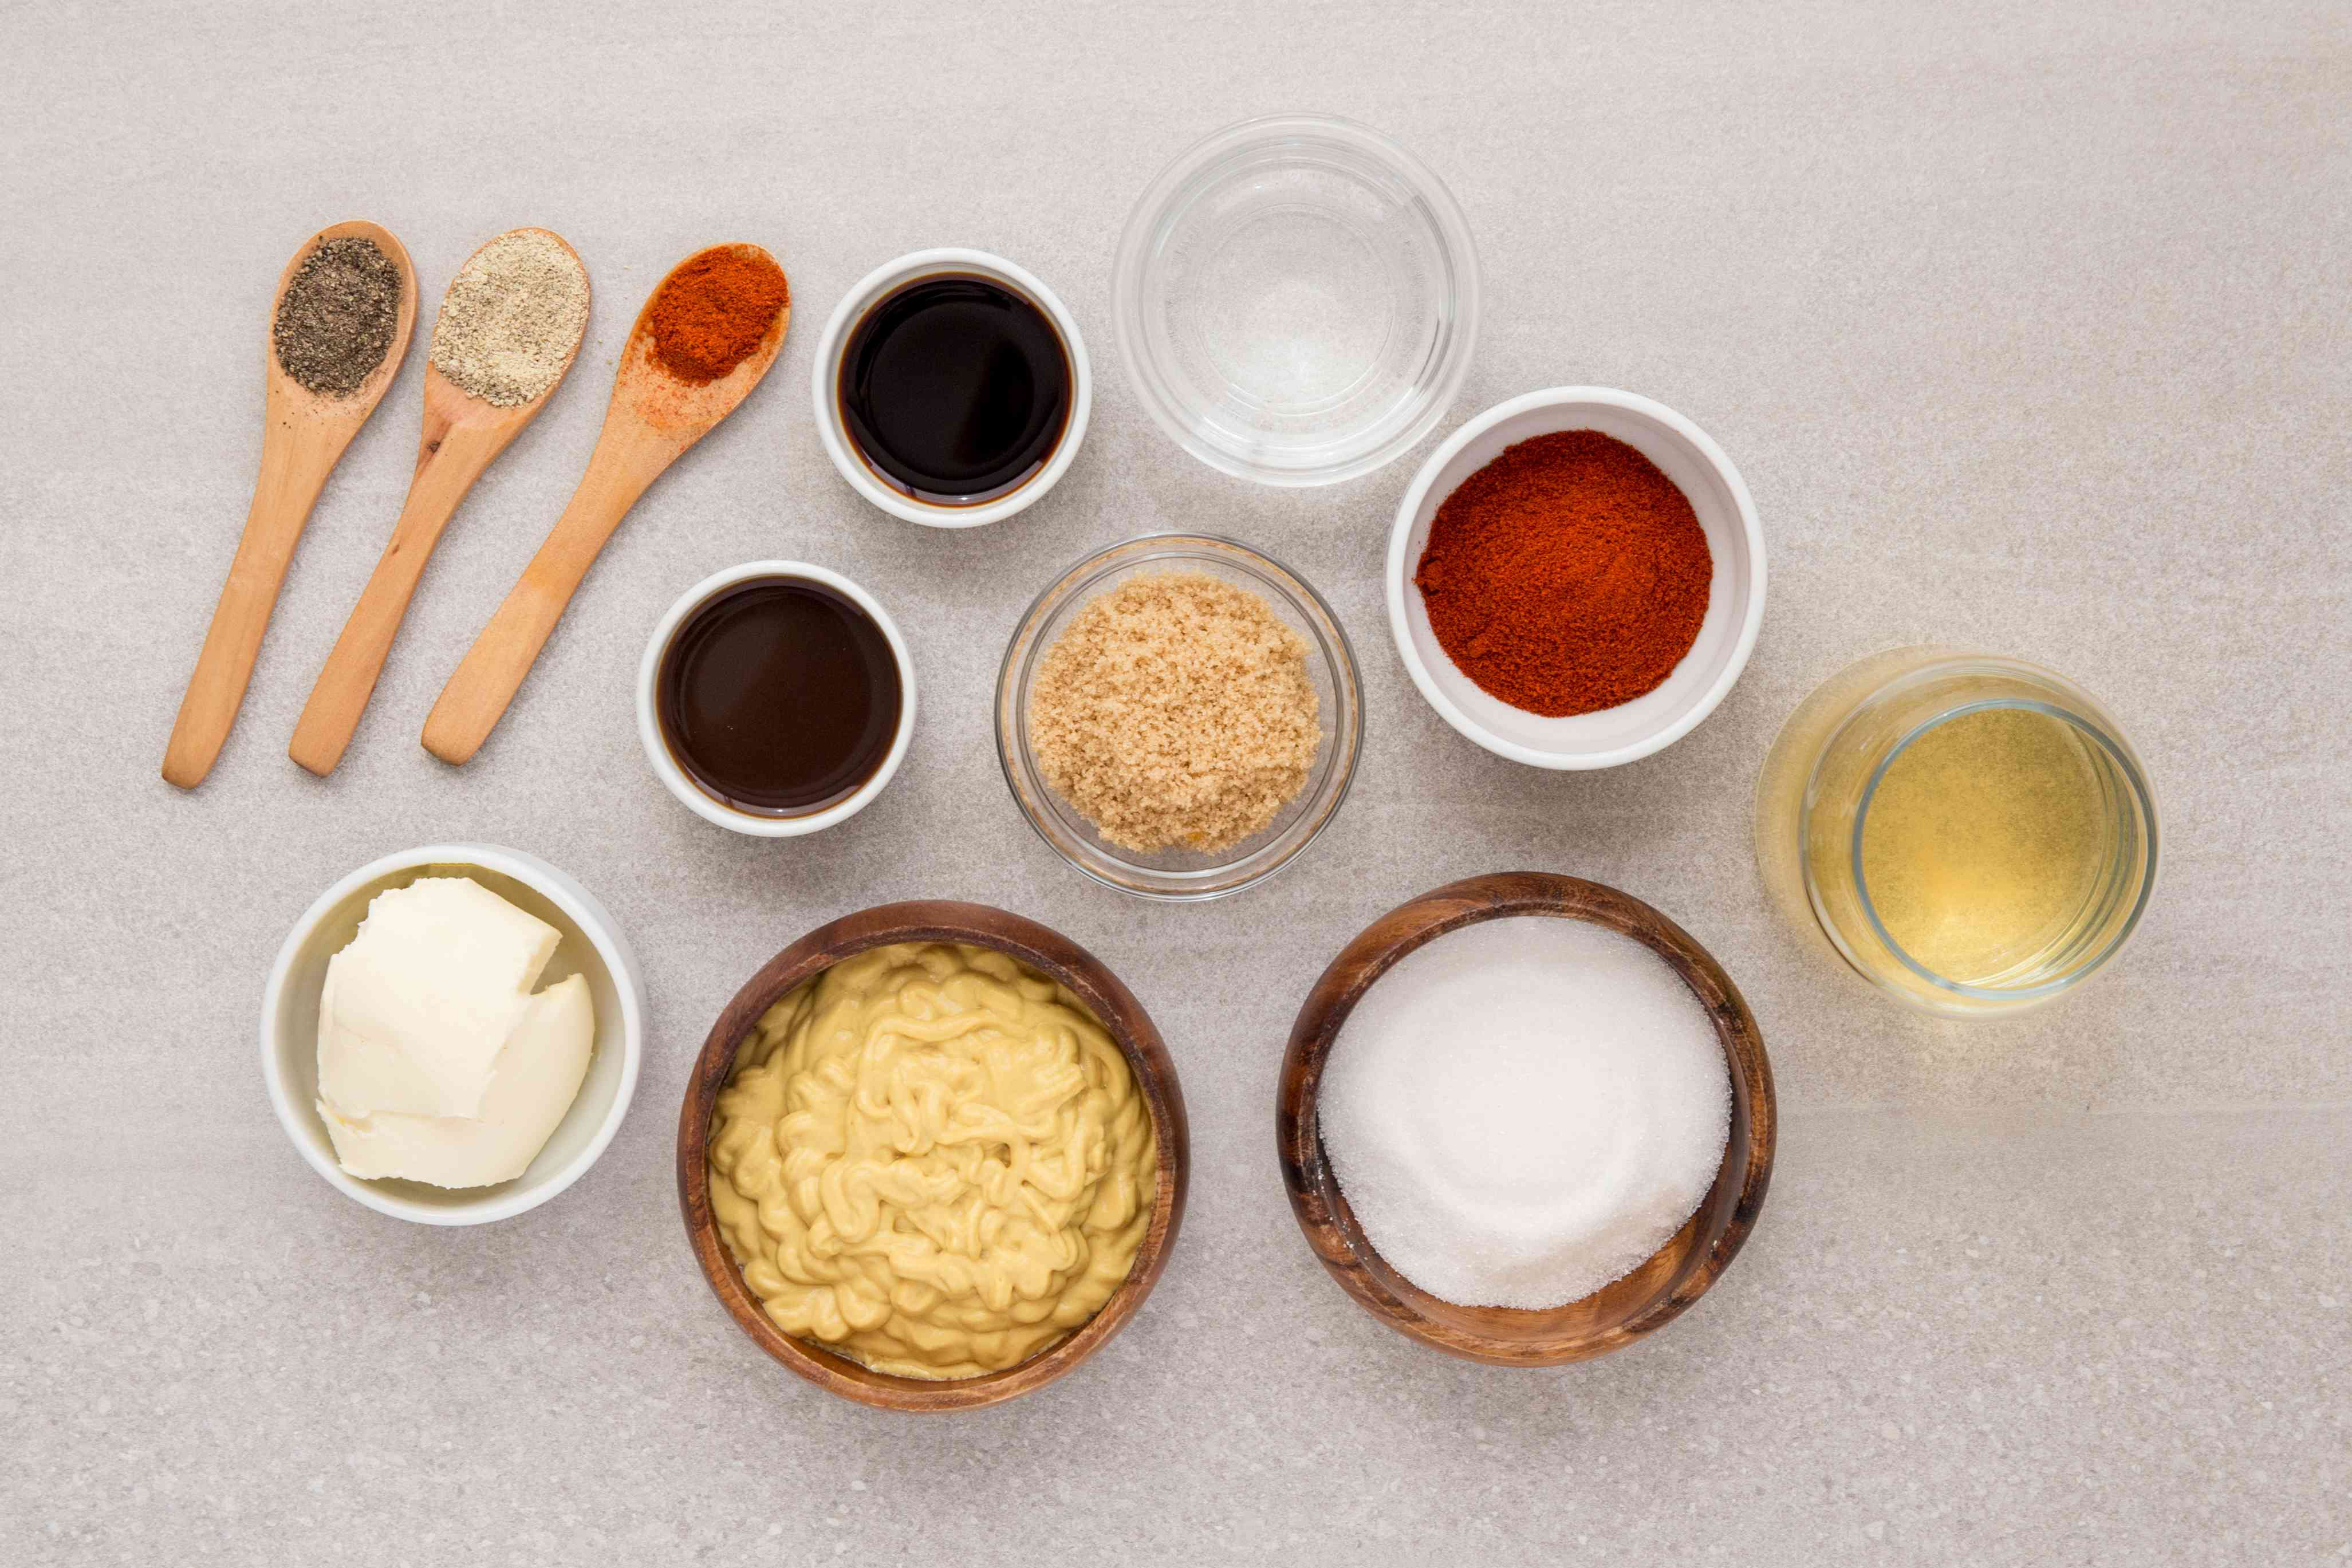 Big Daddy's Carolina-Style Barbecue Sauce ingredients